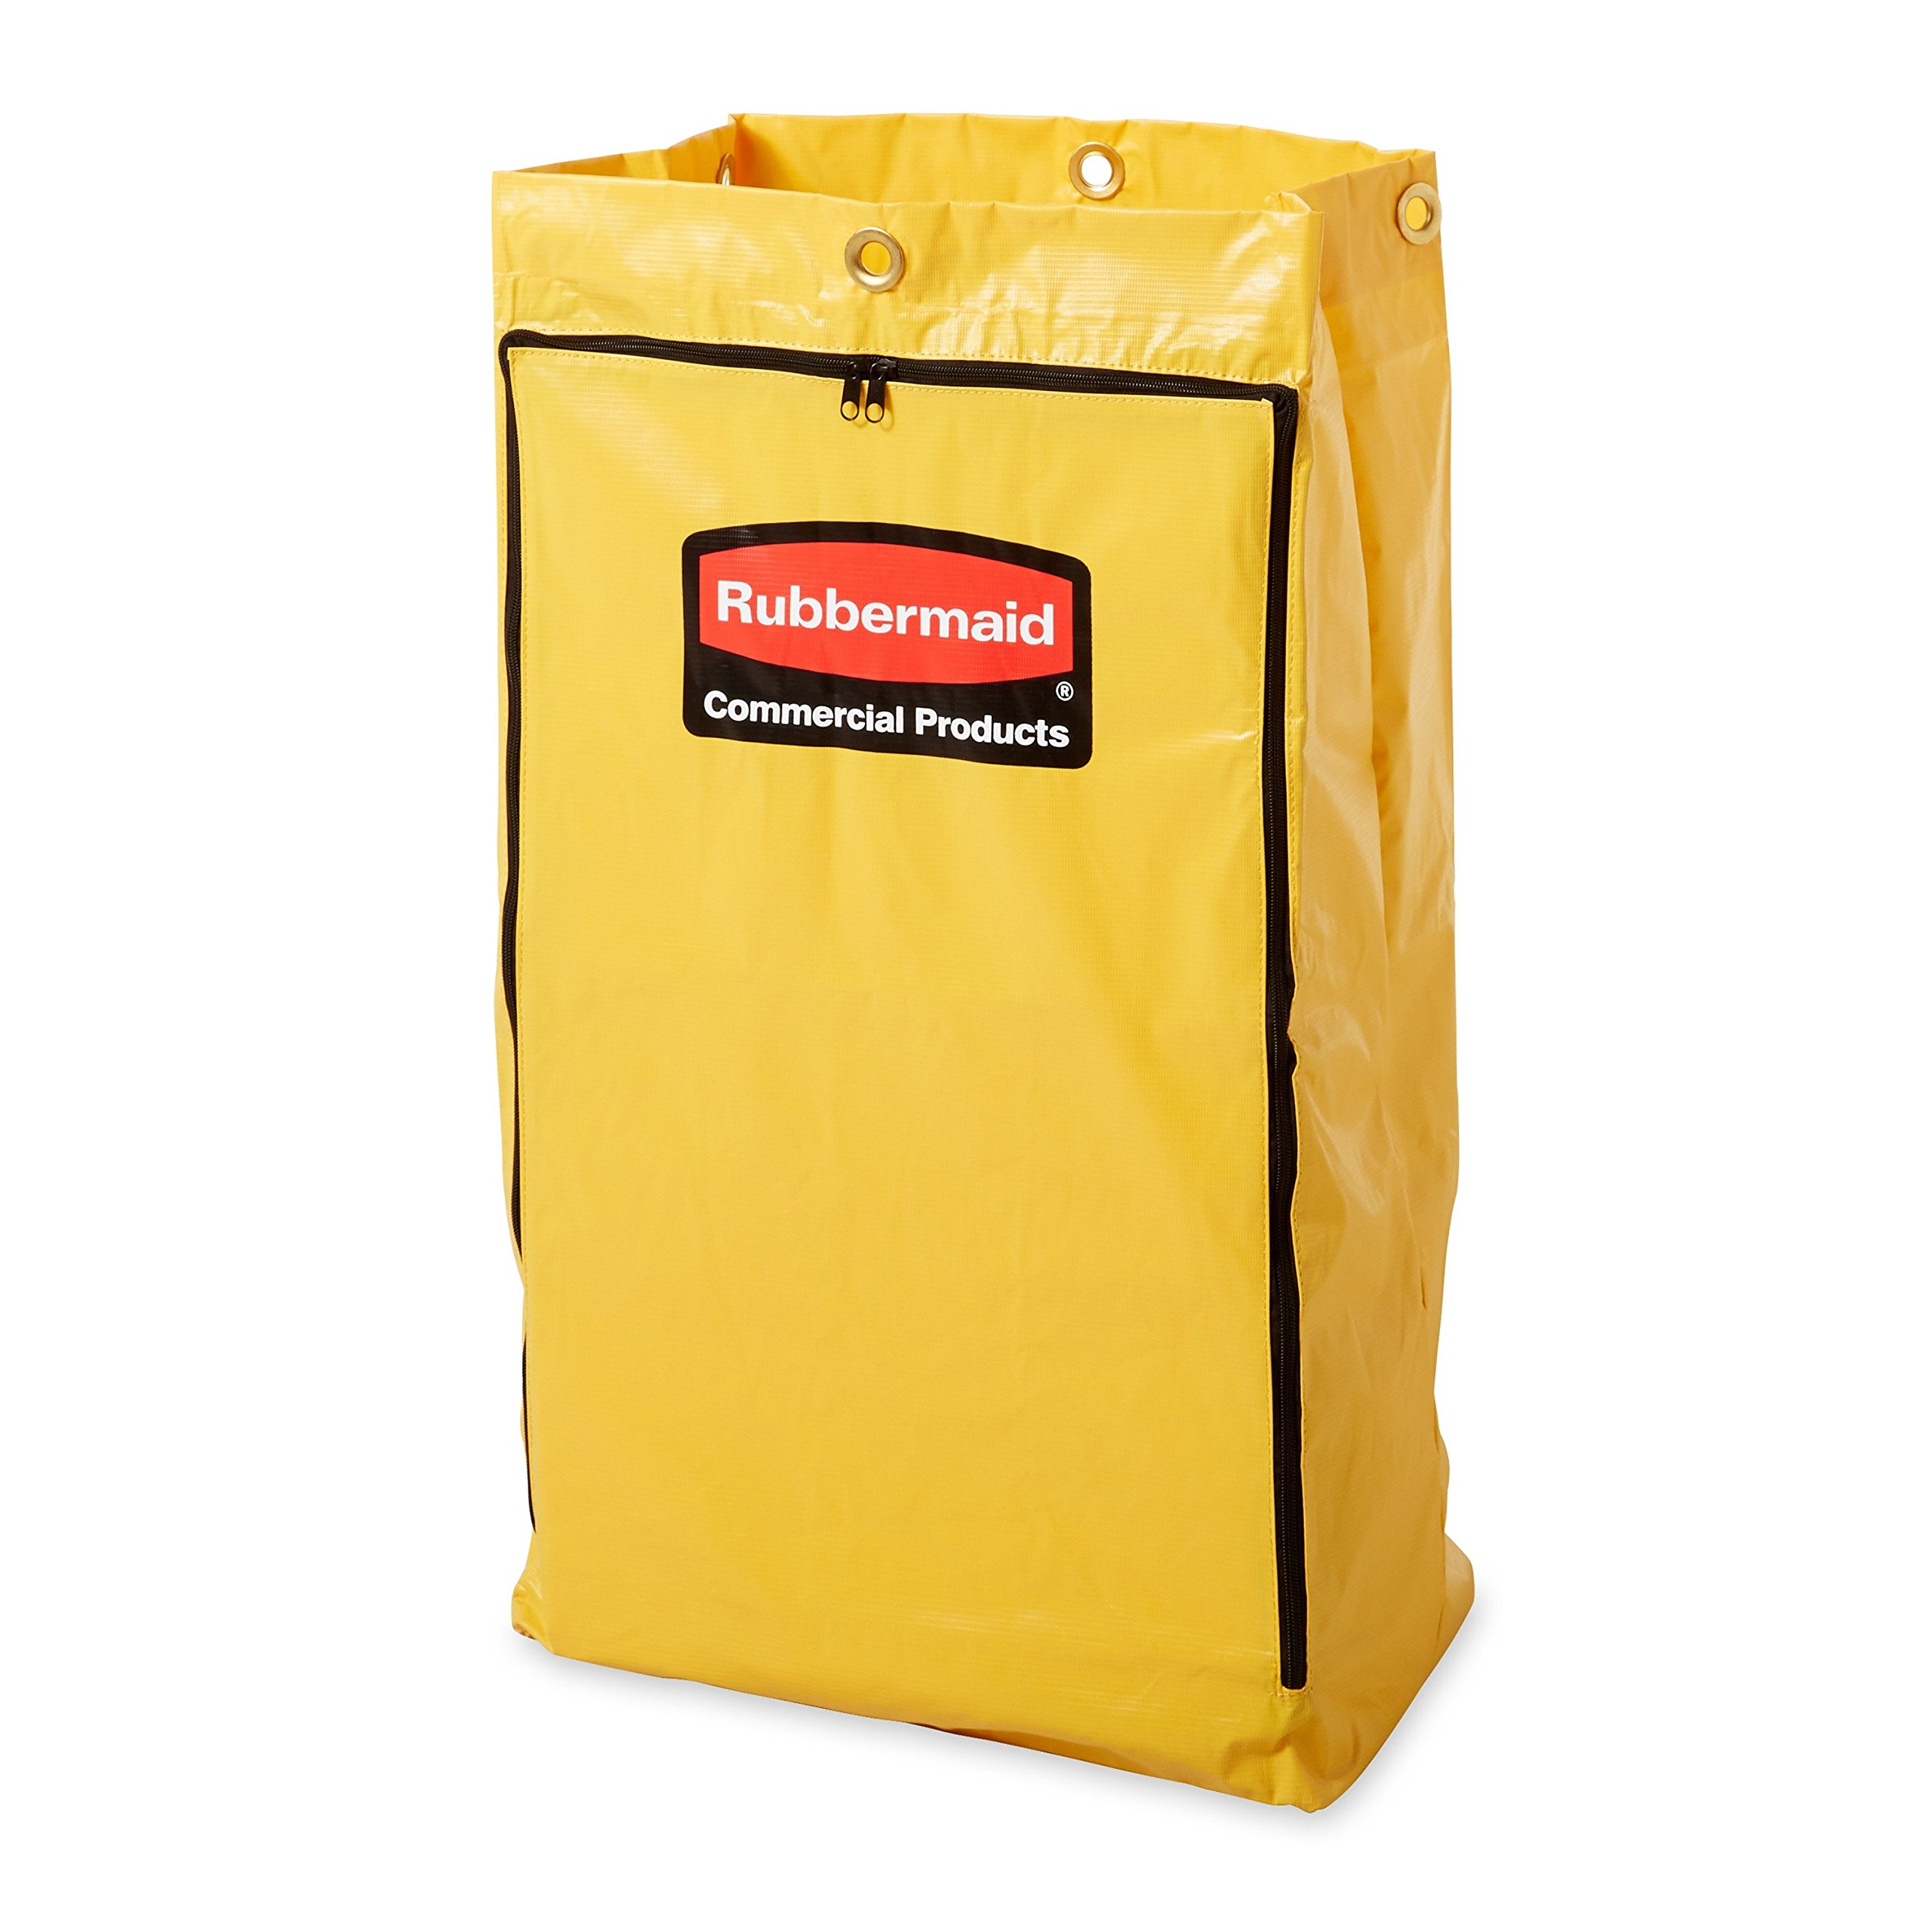 Rubbermaid FG618300 Vinyl Replacement Bag with Zipper for Cleaning Cart, 17.25'' Length, 10.50'' Width, 30.50'' Height, Yellow